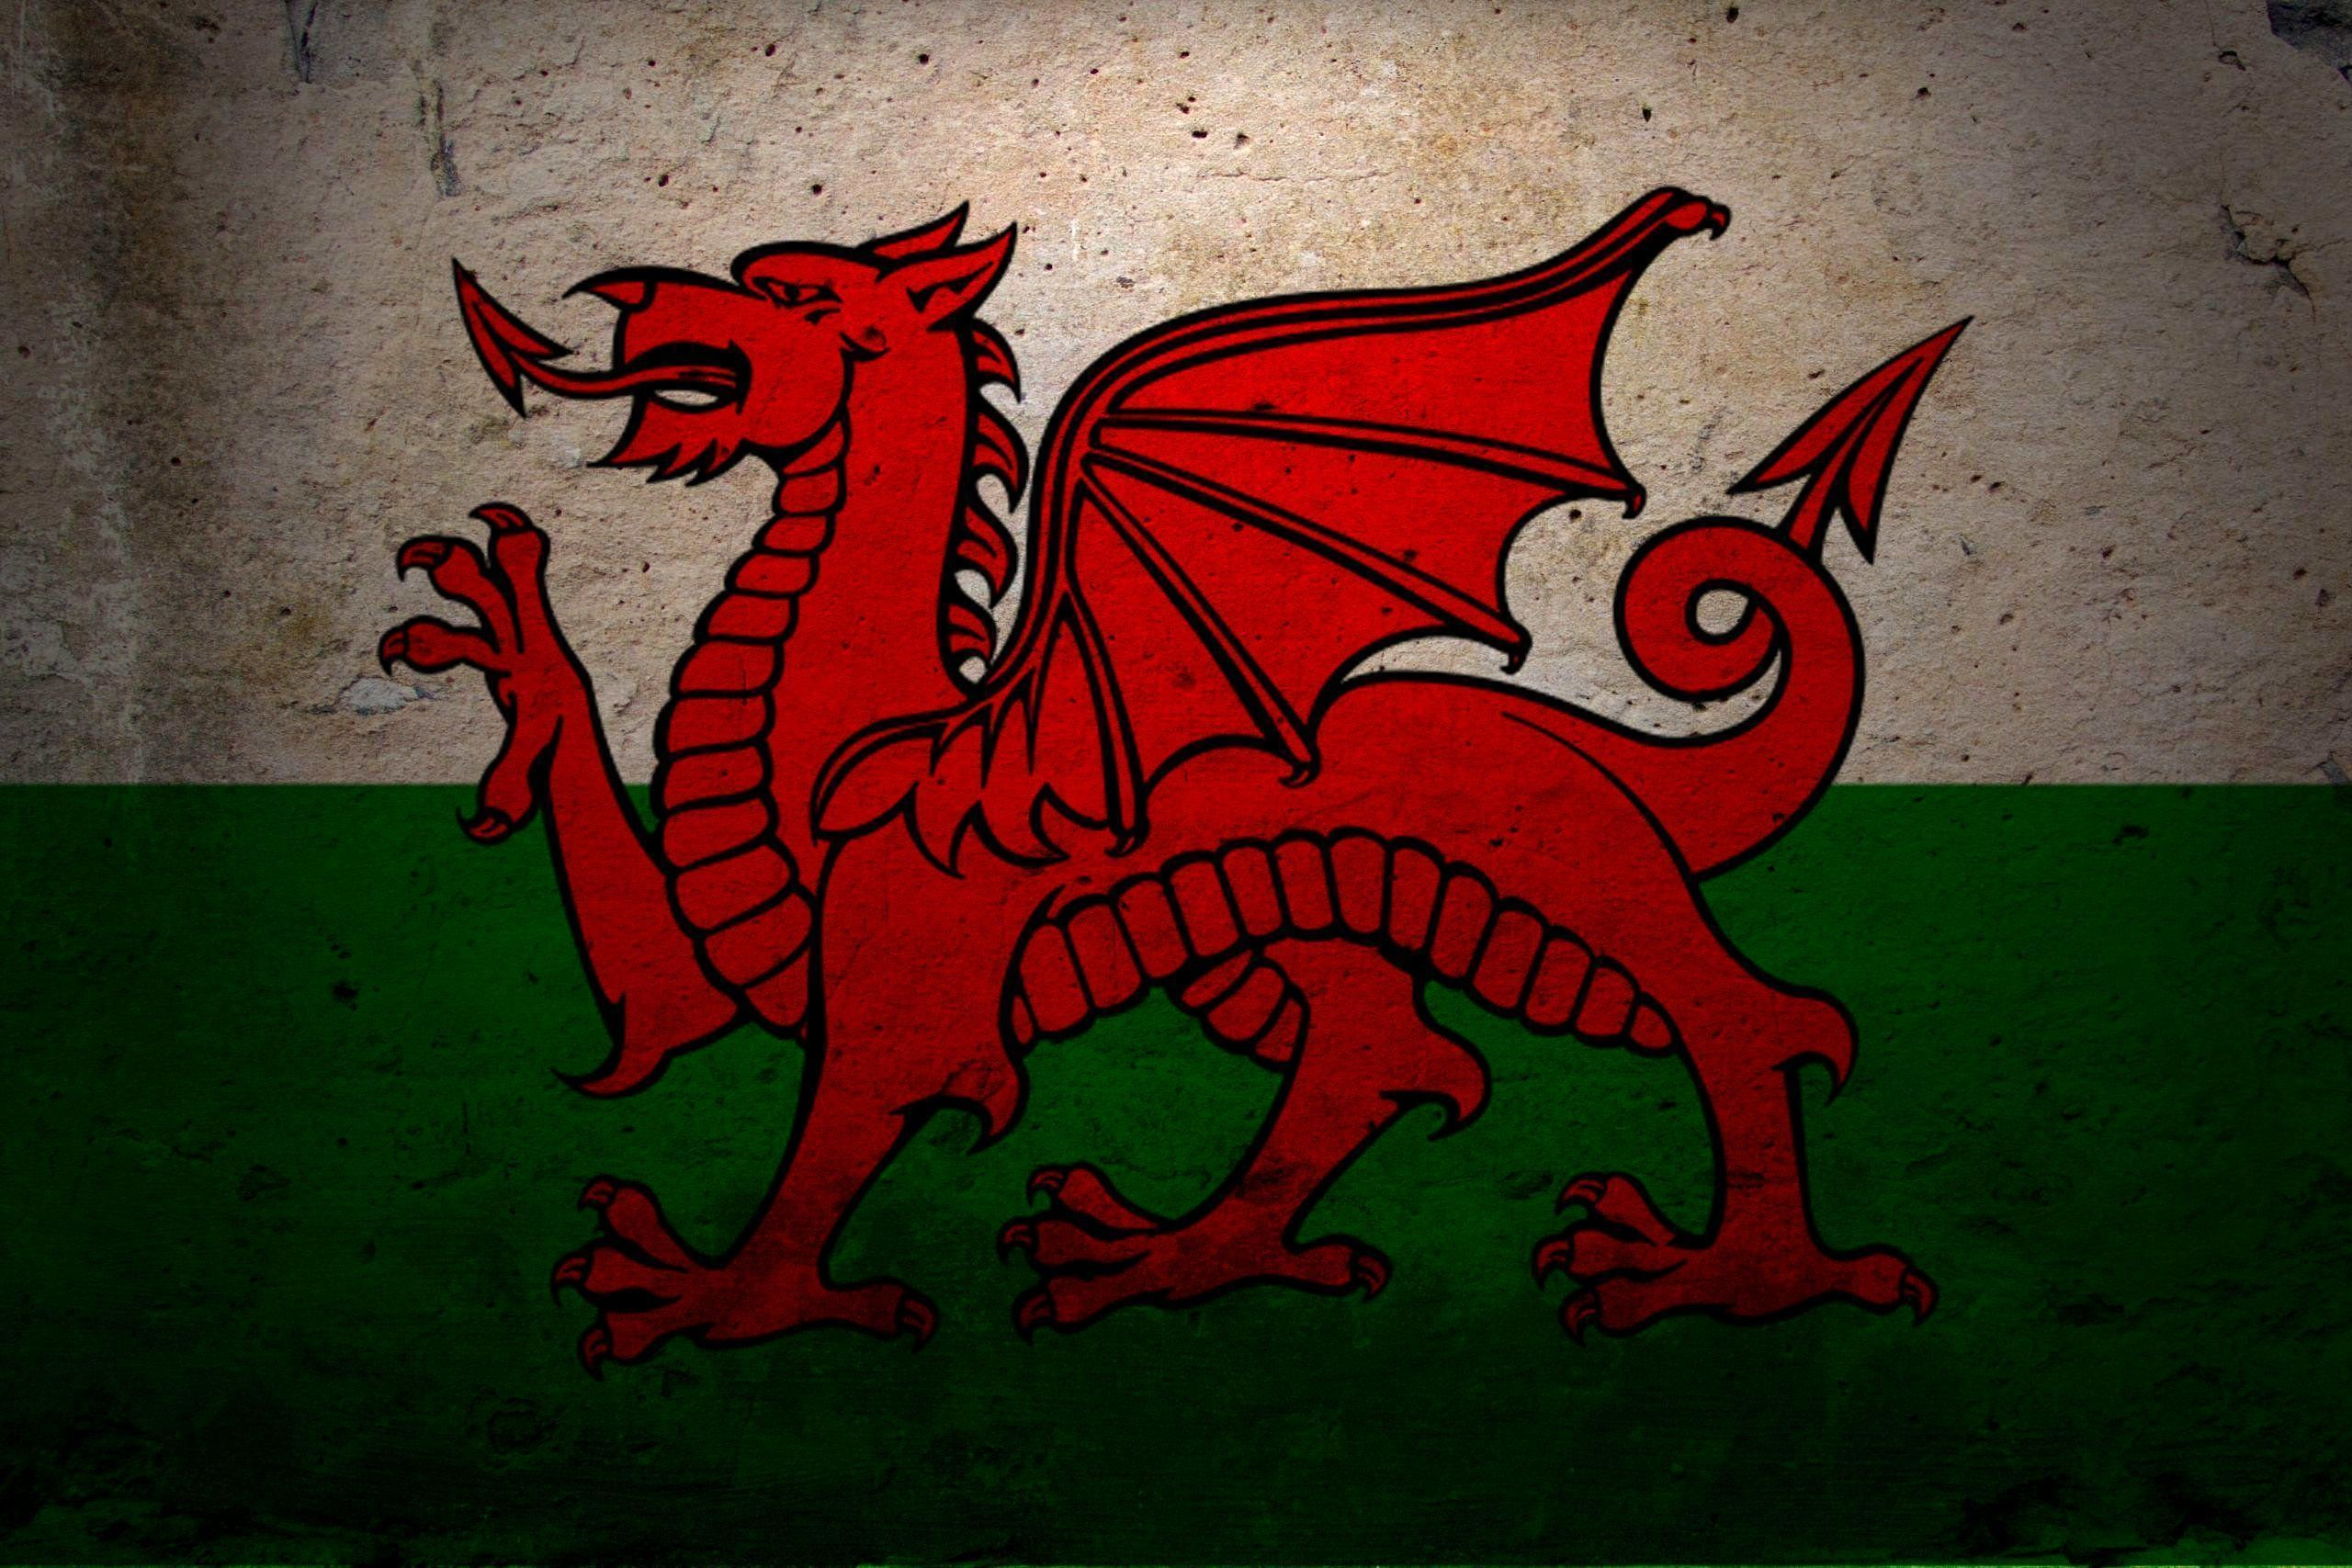 Welsh Flag Wallpaper 57 images 2560x1707